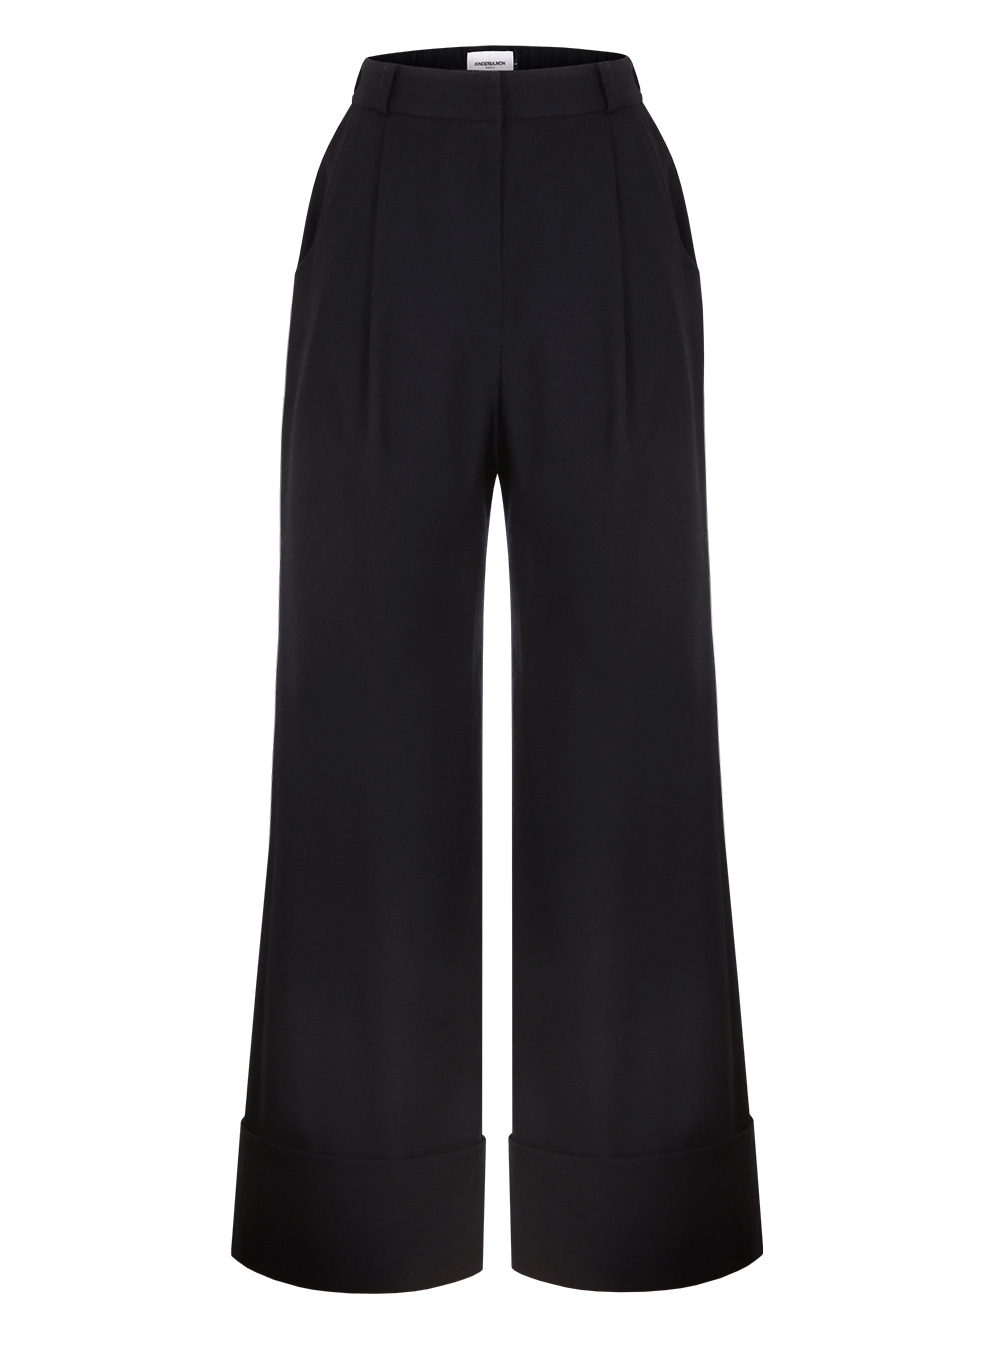 FW18 WIDE PANTS DARKNAVY